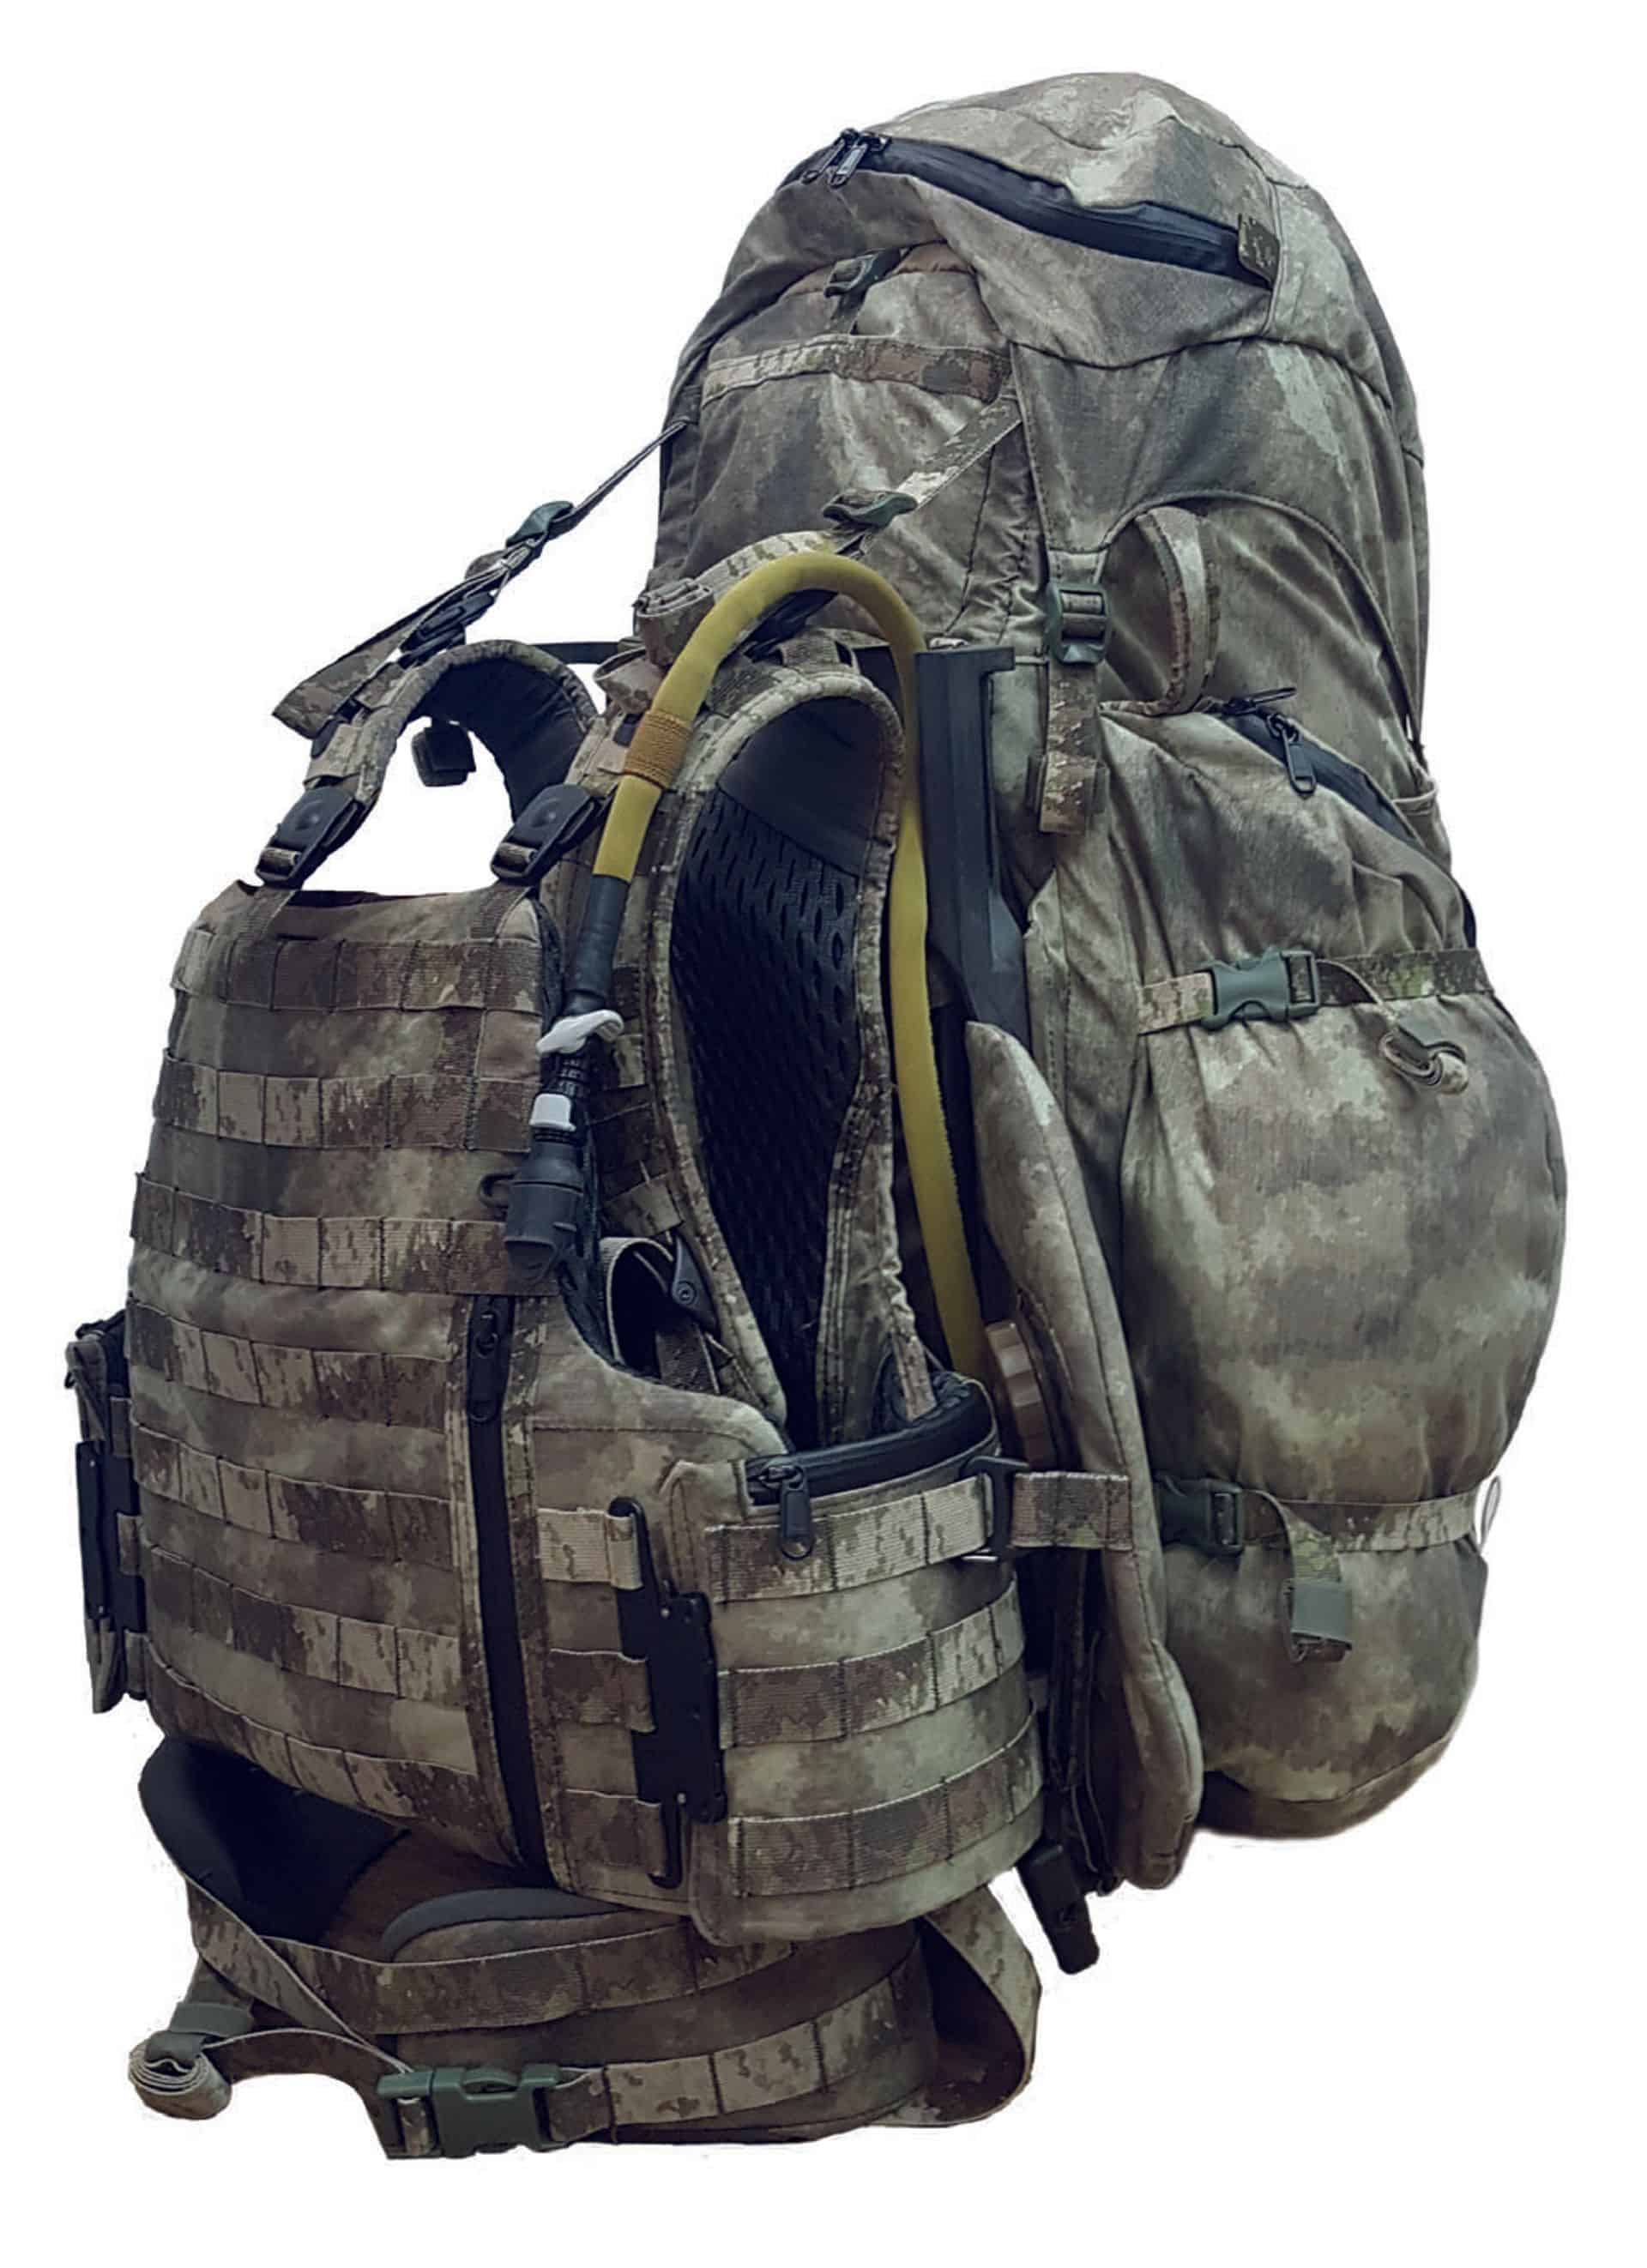 Fusion System Marom Dolphin Unified Molle Modular Carrying System with Detachable Backpack